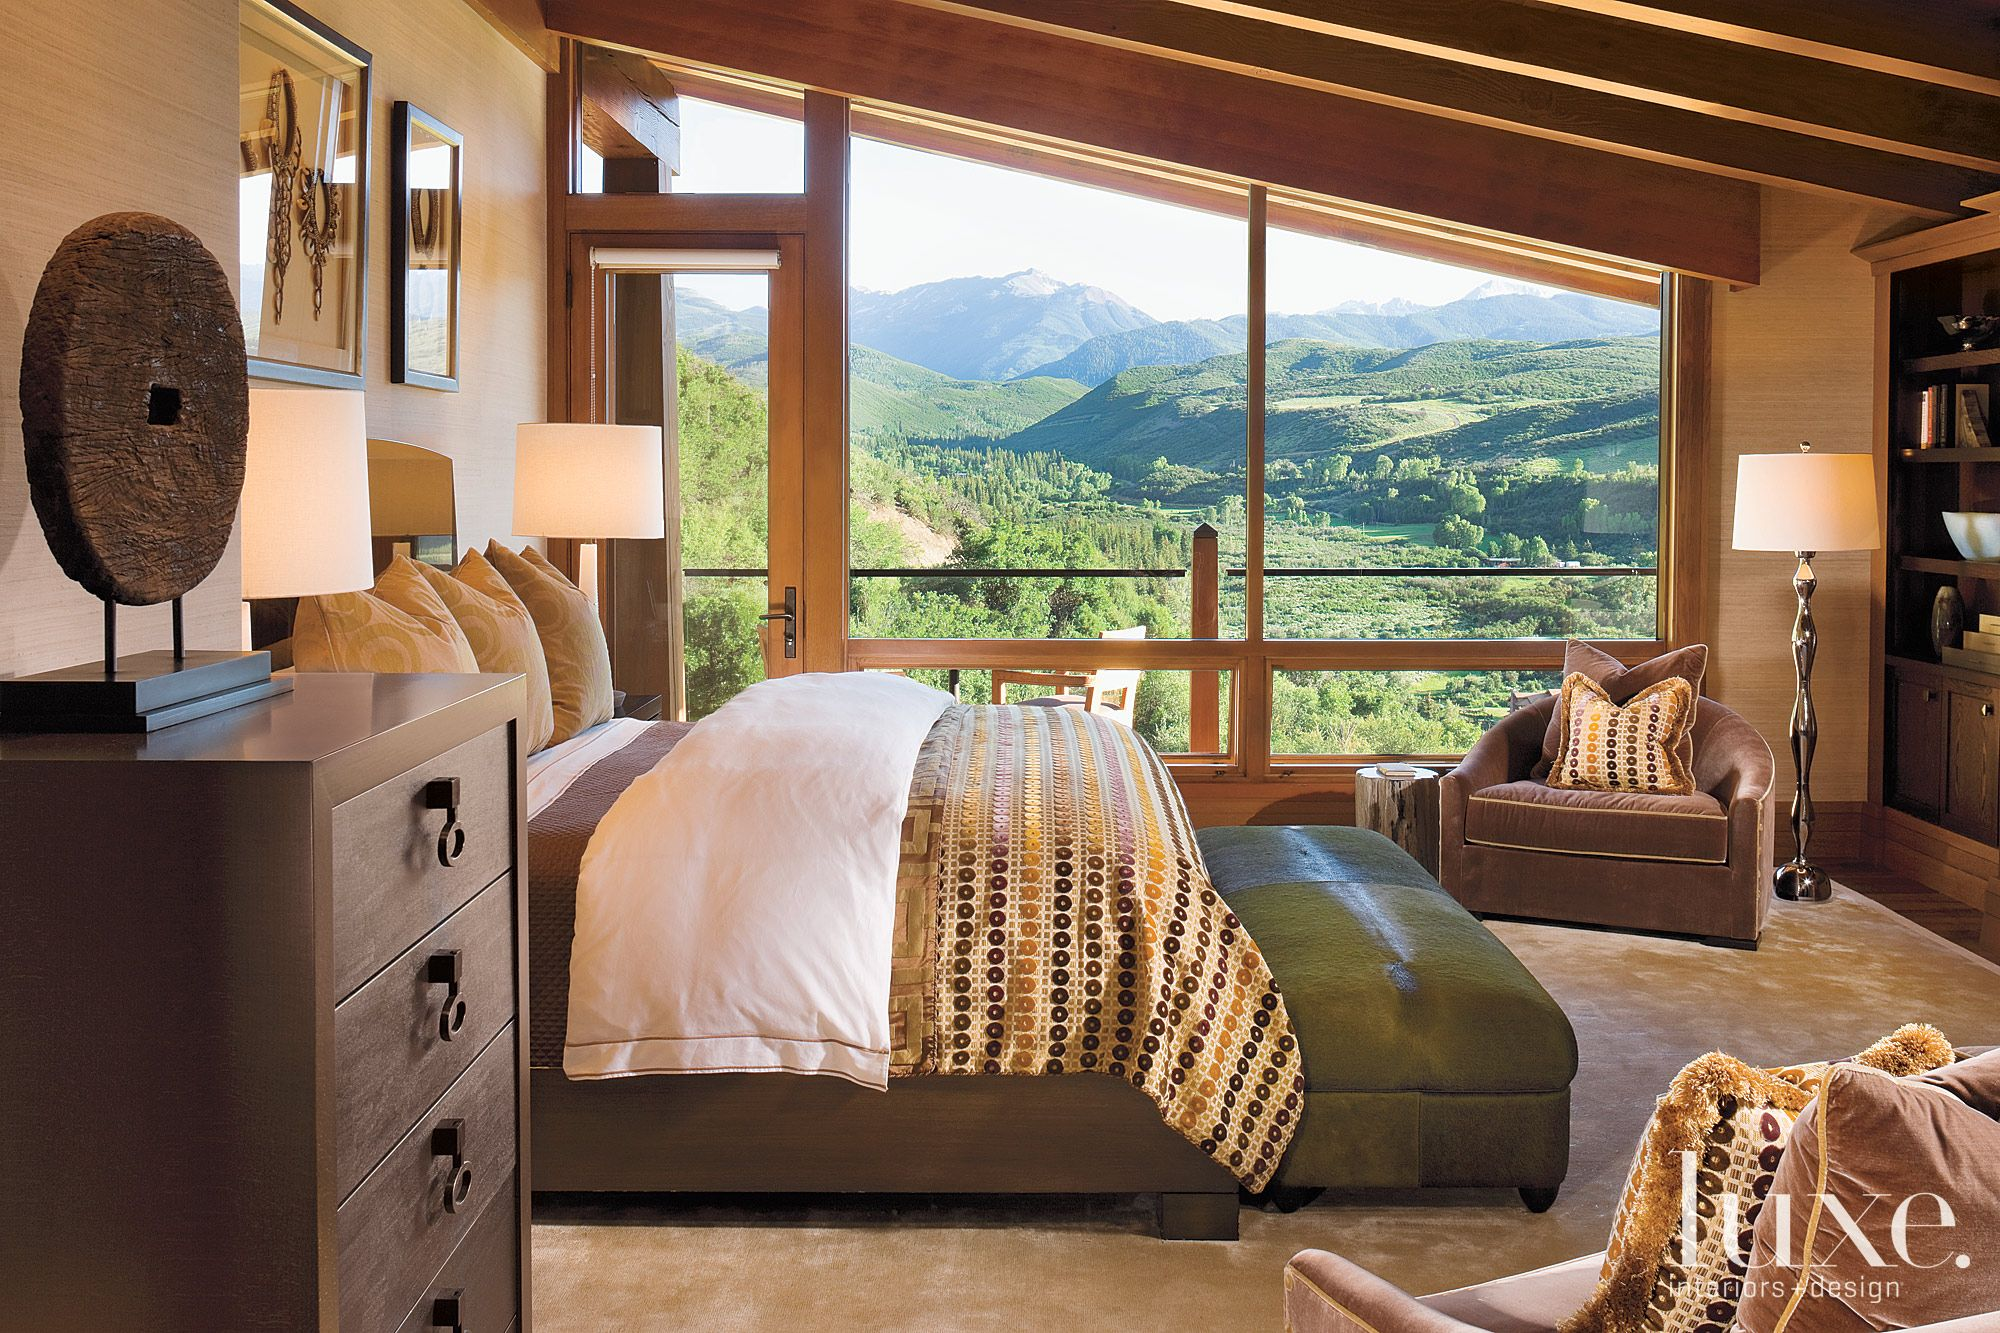 Mountain Neutral Bedroom with Mountain Views